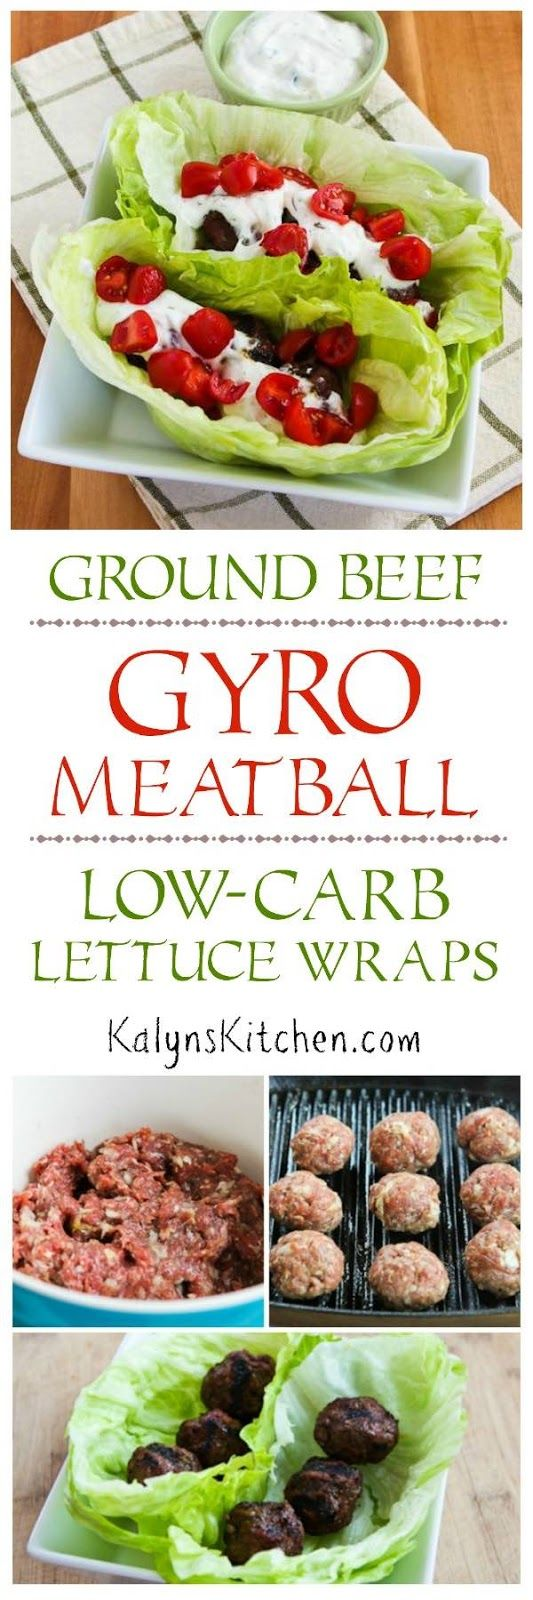 Ground Beef Gyro Meatball Lettuce Wraps with Tzatziki and Tomatoes are absolutely delicious for a healthy meal that's low-carb, low-glycemic, gluten-free, and South Beach Diet friendly. Skip the tomatoes for a Keto version. If you love Gyros, you will love these lettuce wraps!  [found on KalynsKitchen.com] #GyroMeatballLettuceWraps #GyroLettuceWraps #LowCarbGyroLettuceWraps